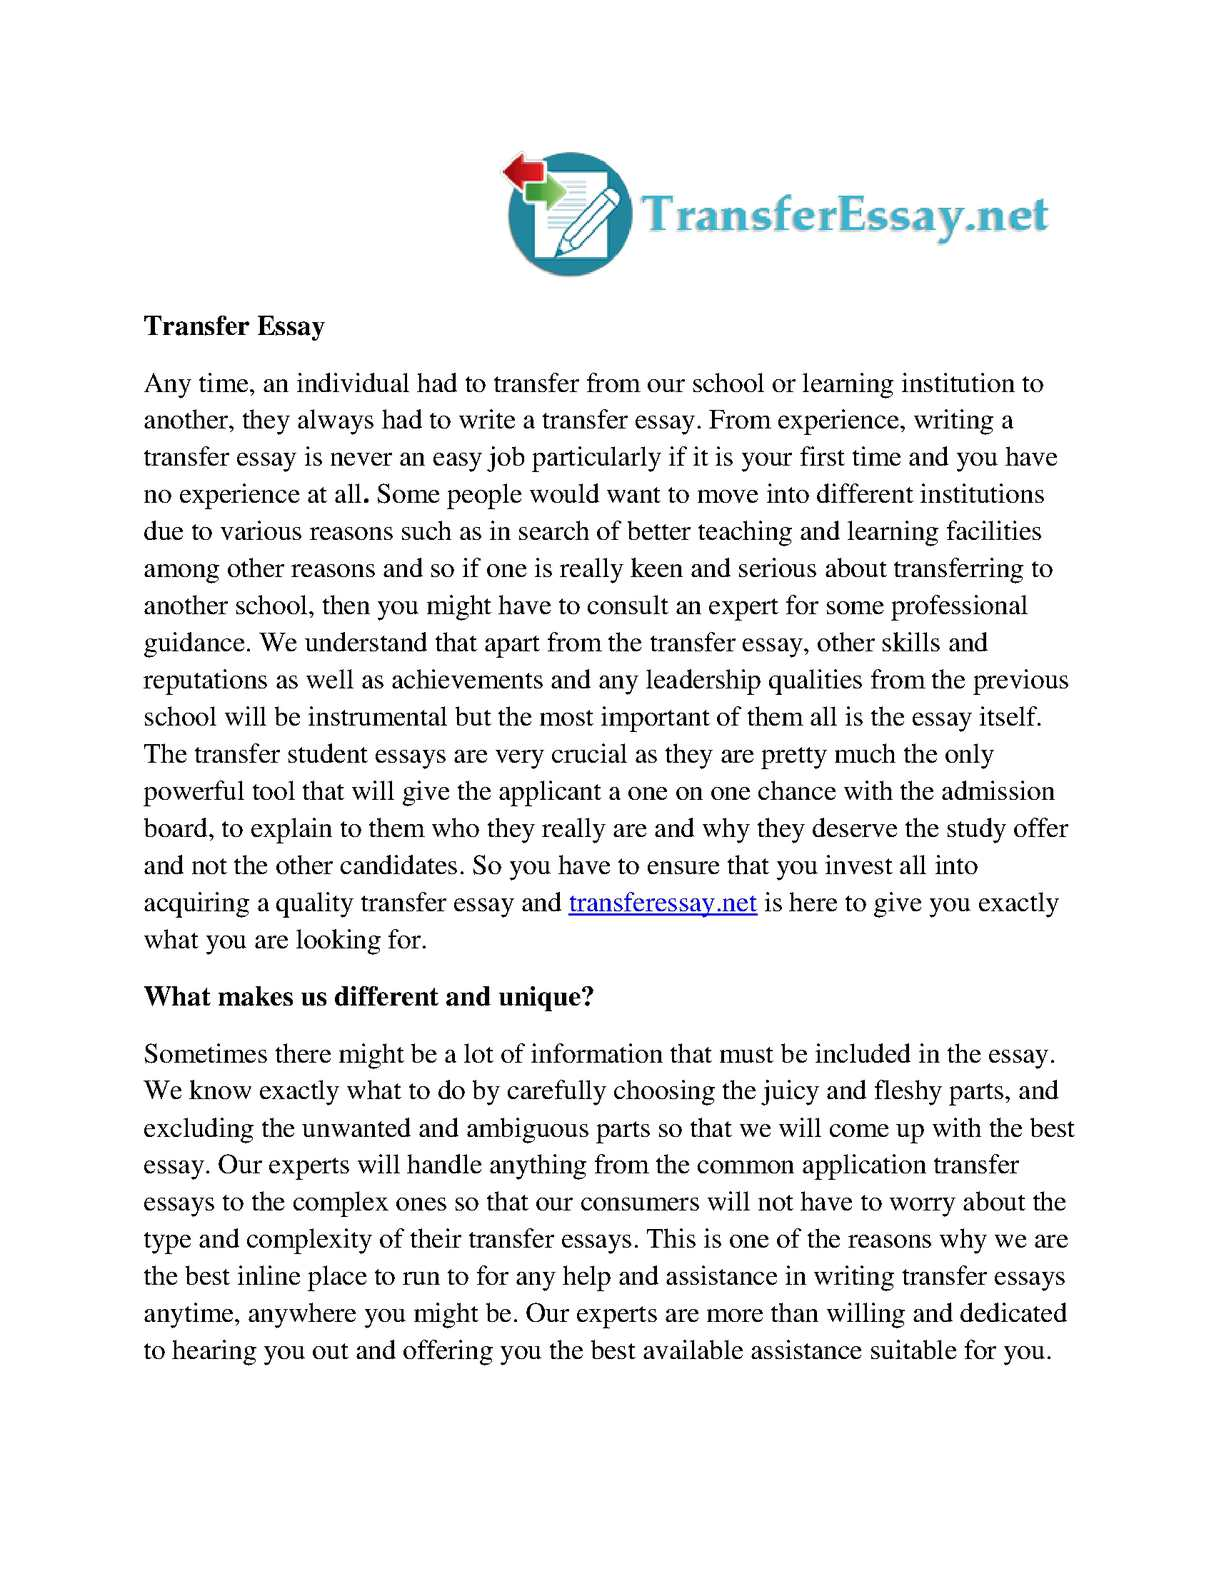 common app reasons for transferring essay Are you writing a common app transfer essay now you know that you're in good company there are a variety of reasons for transferring to a new school.